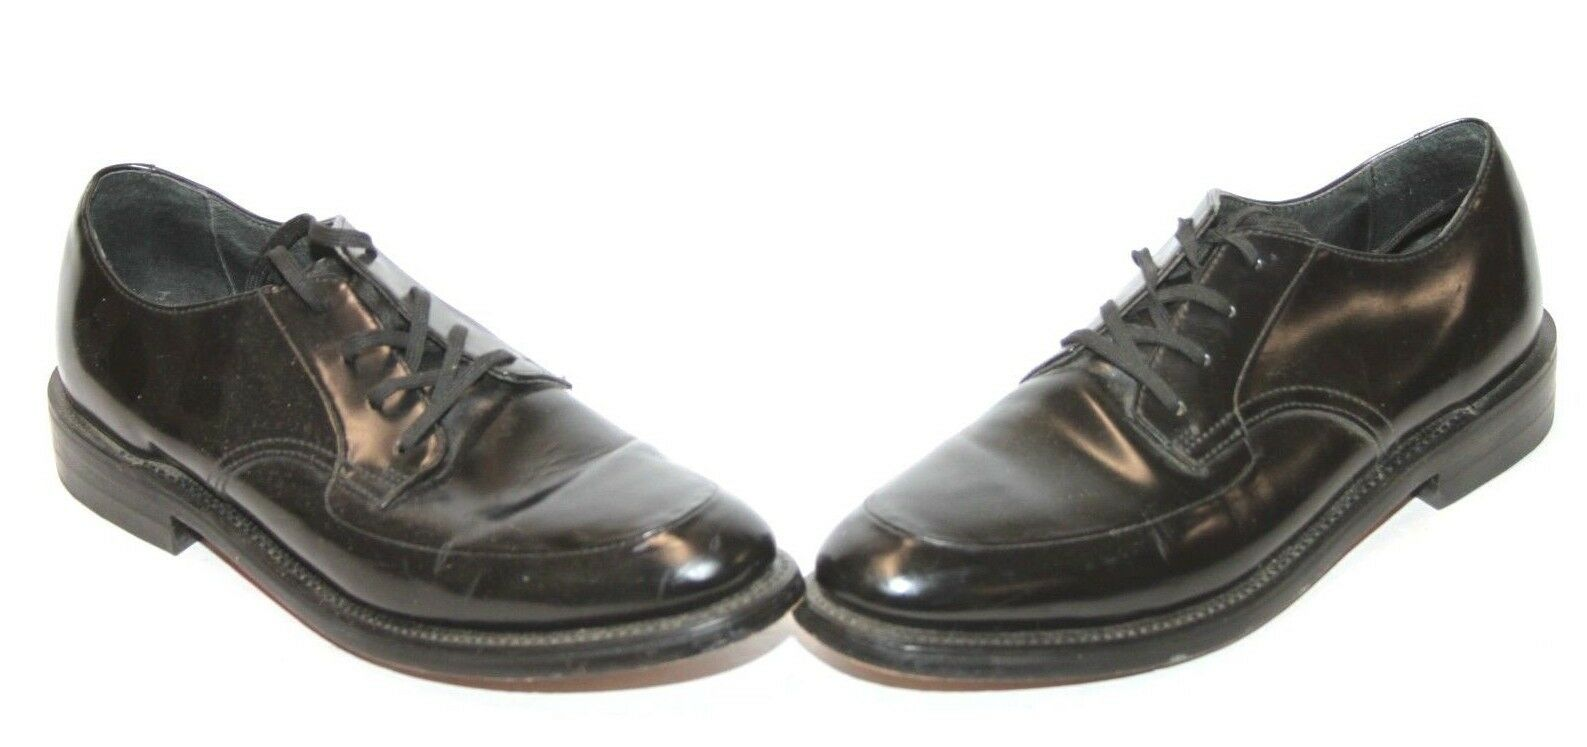 Executive Imperials Style Leather 333  Mens Black Leather Style Dress Shoes Sz 11a Narrow ce7034